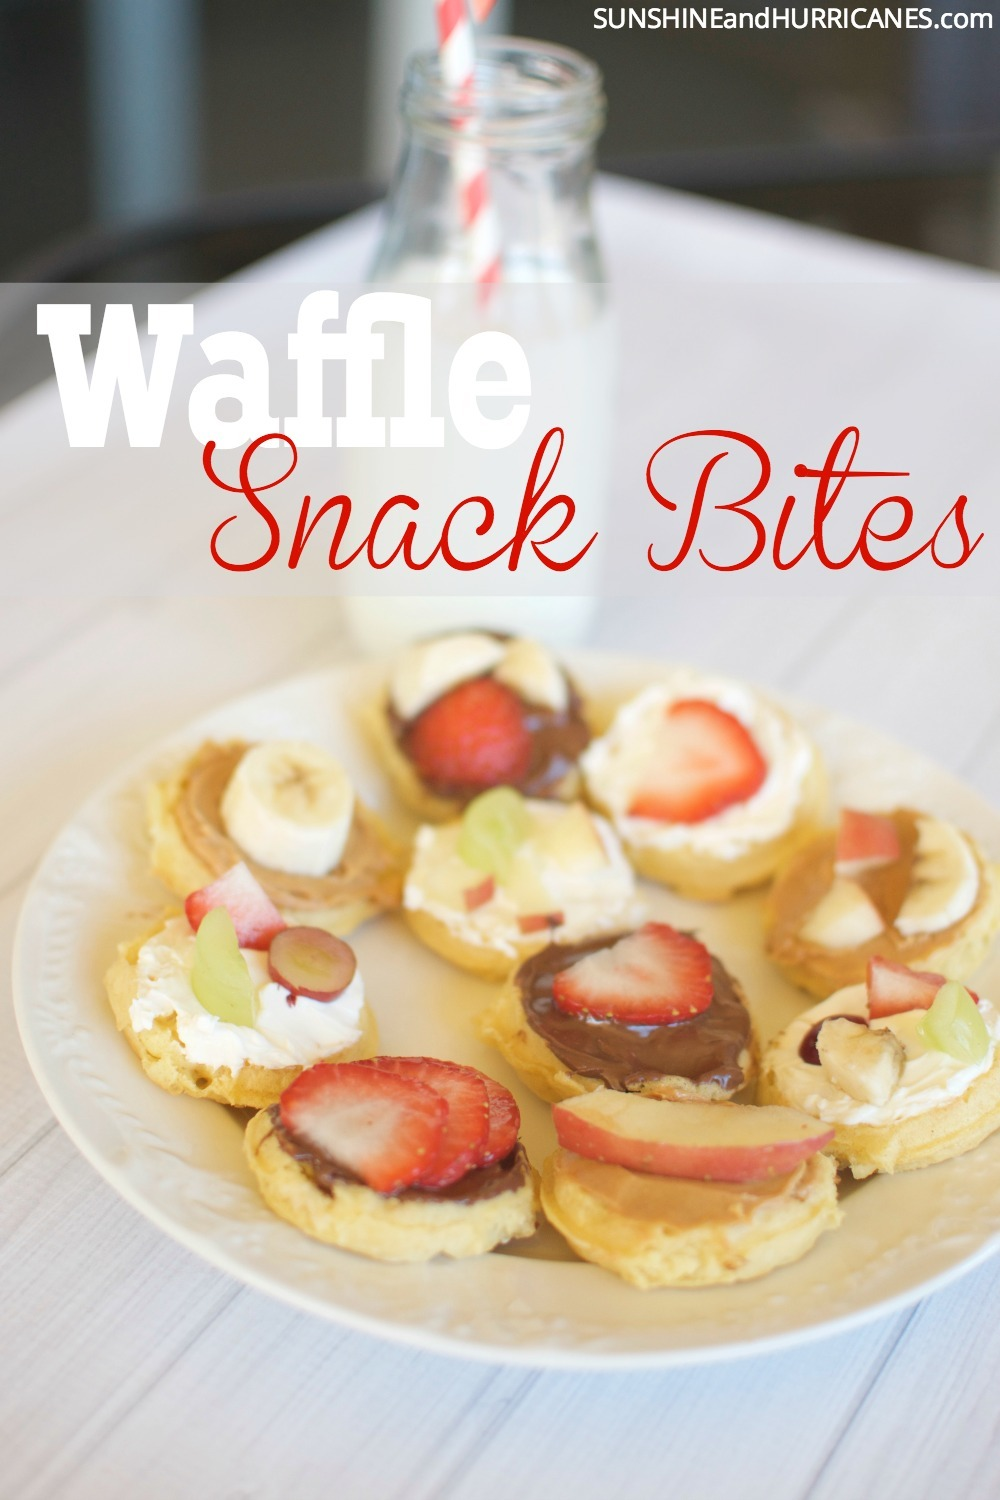 Looking for a tasty and quick snack or breakfast for your hard to please kids? These waffle snack bites are the perfect snack solution. A little mix and max so kids can create their own makes it fun and yum all at once. SunshineandHurricanes.com